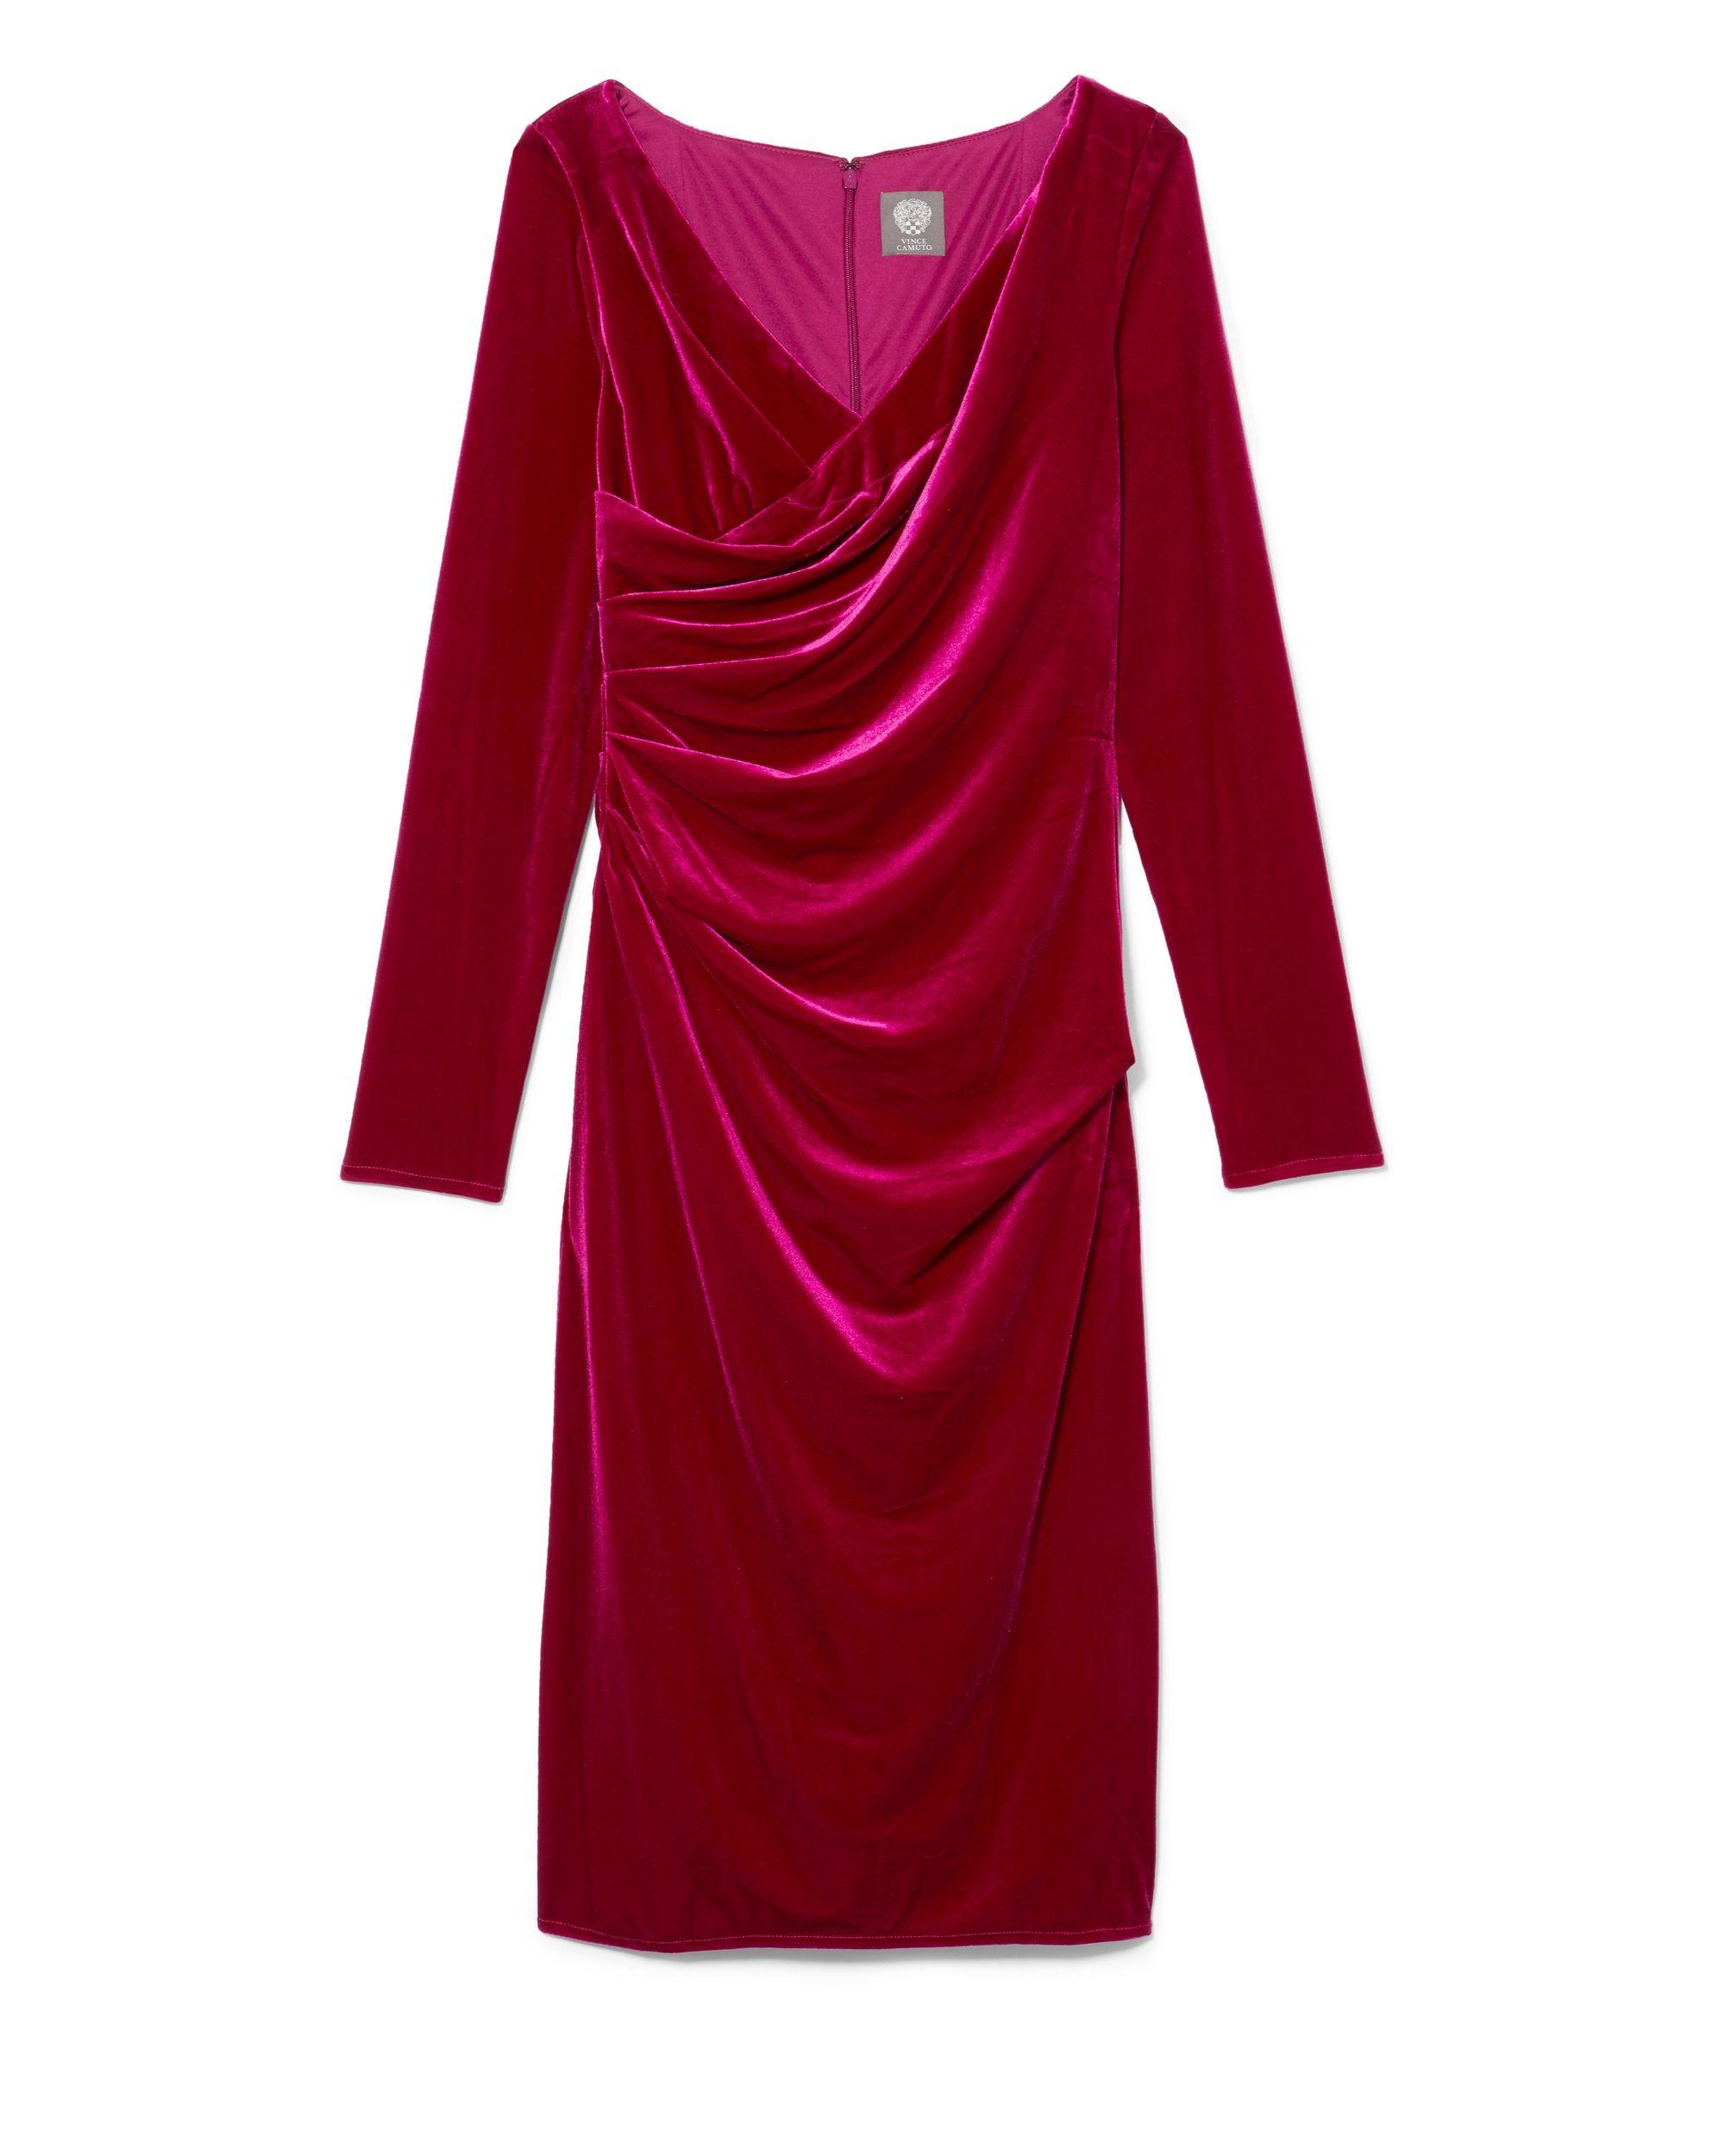 f6ced93cc7f Vince Camuto Velvet Ruched Dress in Red - Save 38% - Lyst